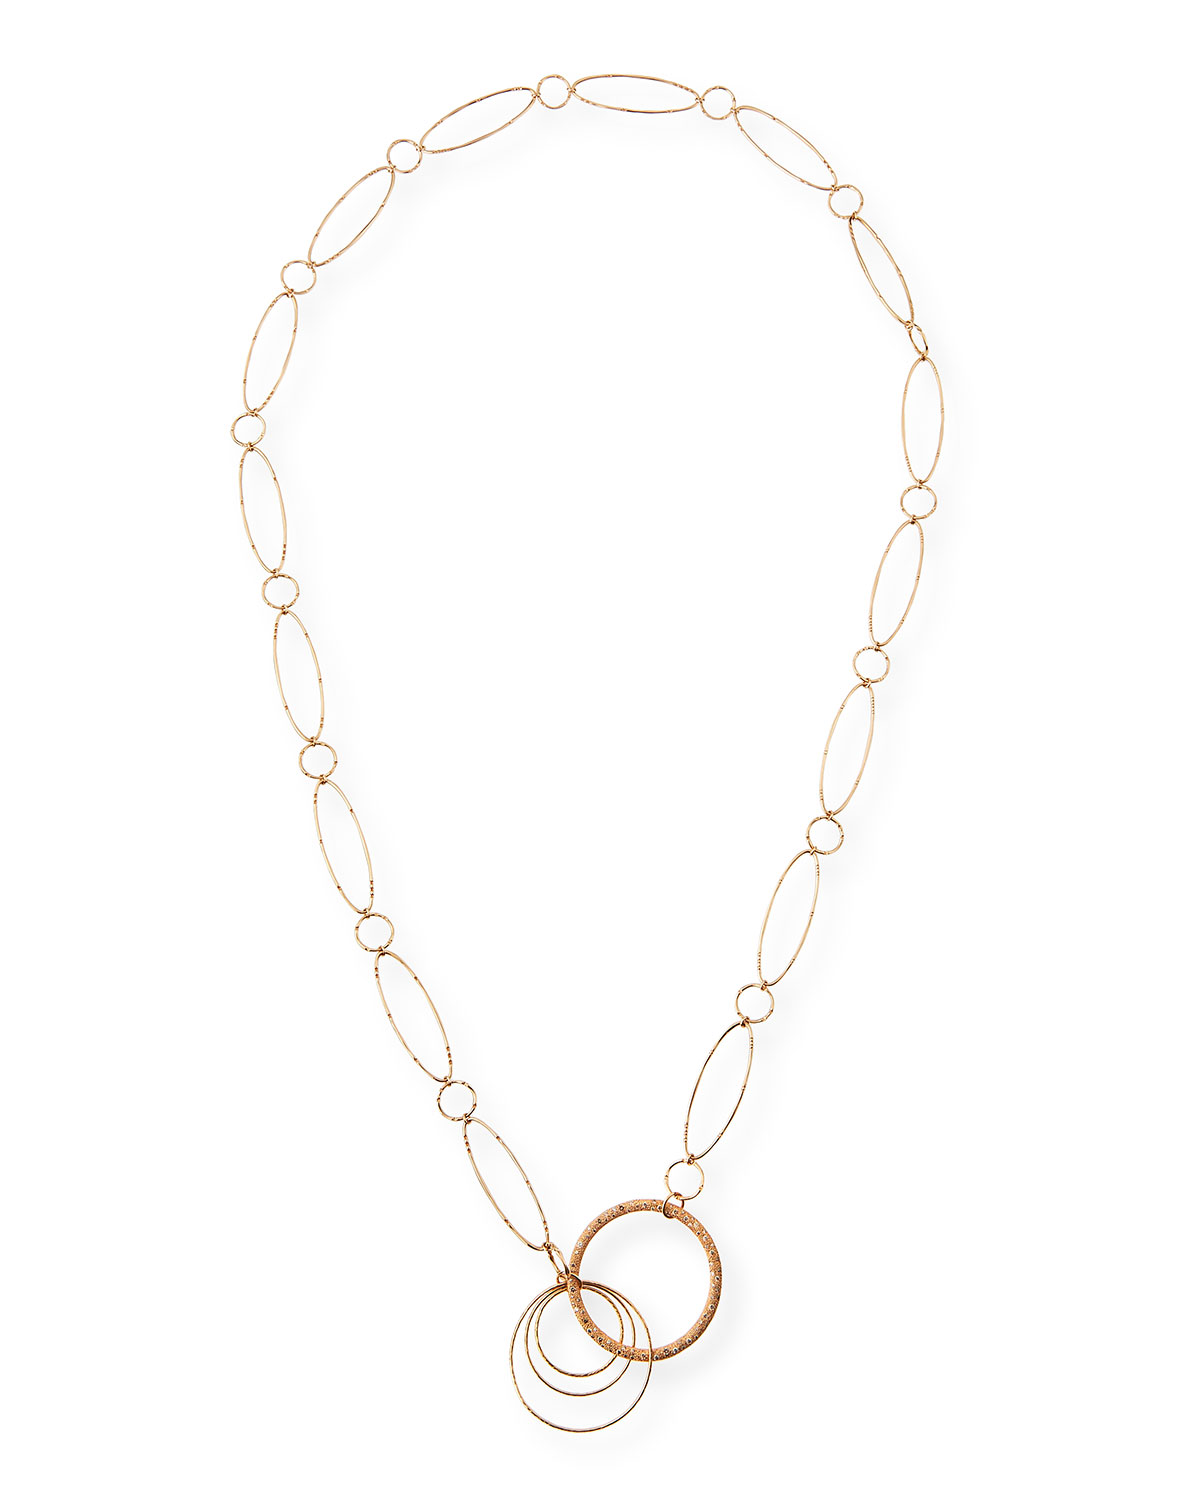 VENDORAFA 18K ROSE GOLD OVAL LINK NECKLACE WITH BROWN DIAMONDS, 36""